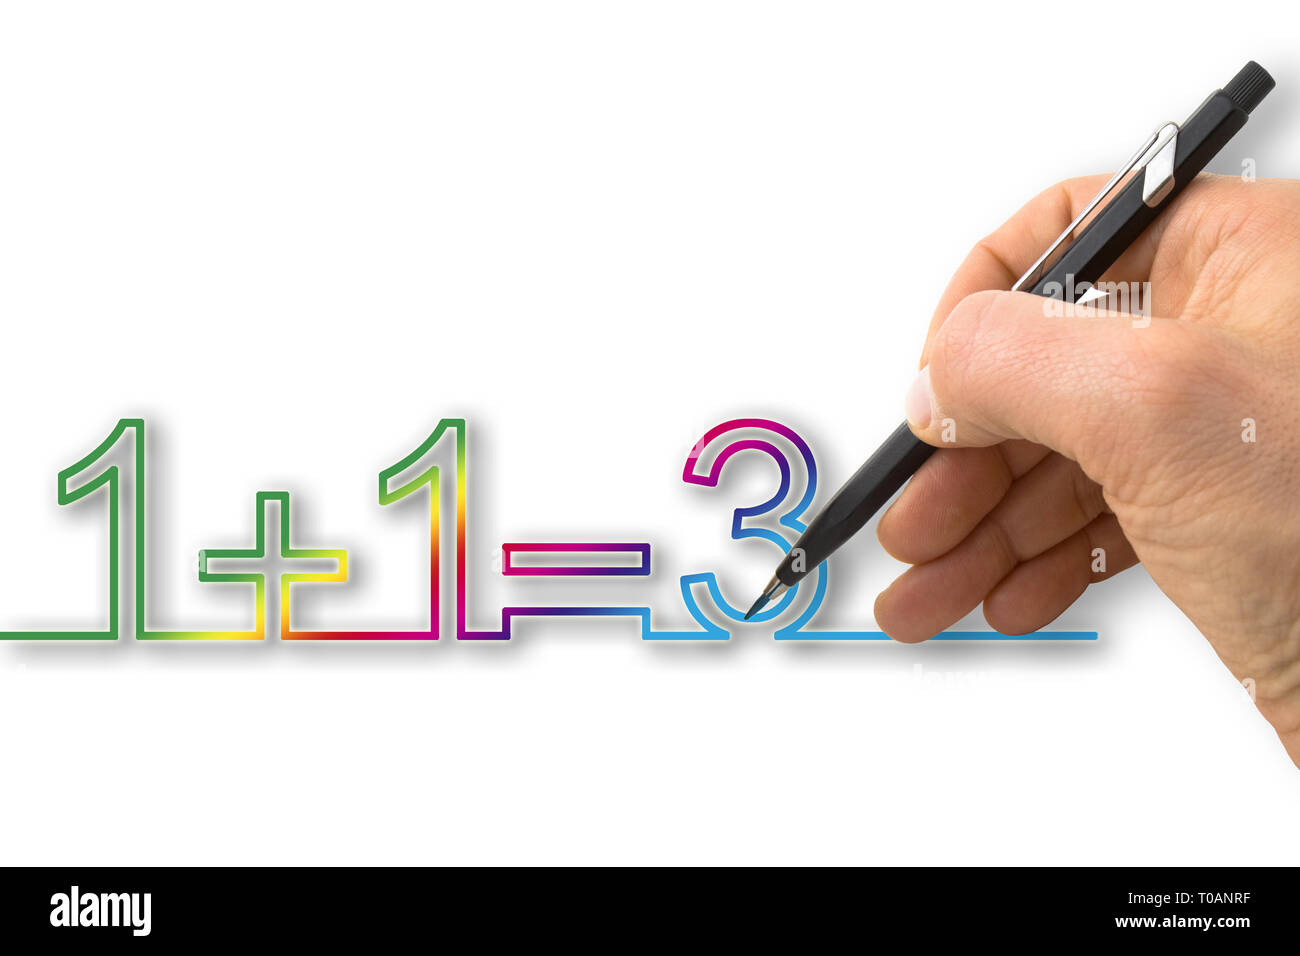 """A hand draws """"one plus one equals three"""" - concept image Stock Photo"""